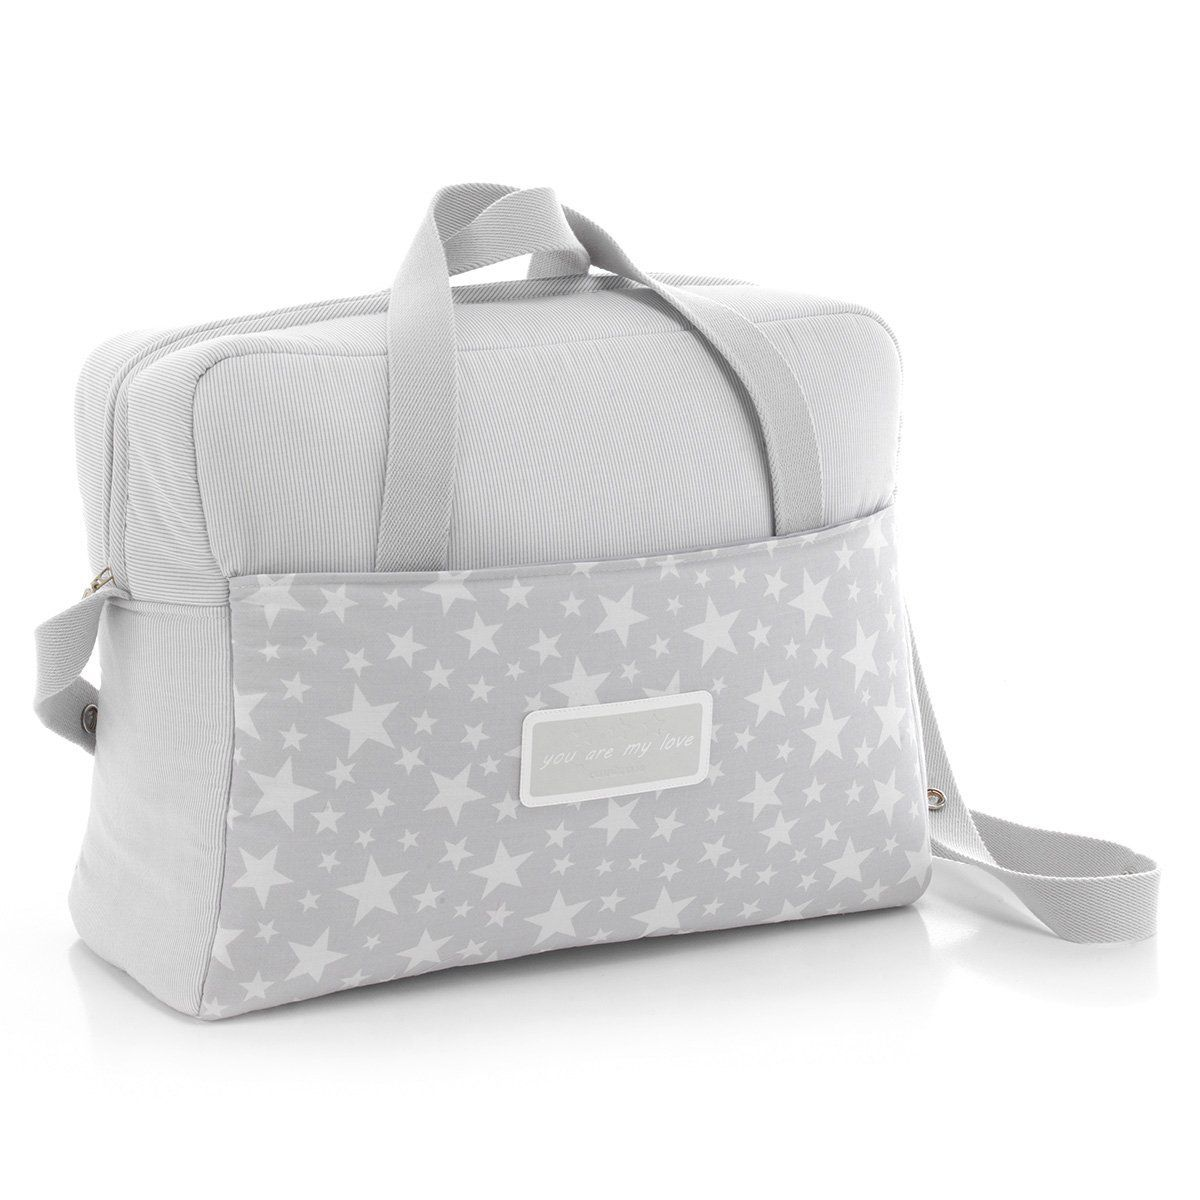 295b51611 Cambrass Star - Bolso maternal tipo maleta, color gris: Amazon.es: Bebé